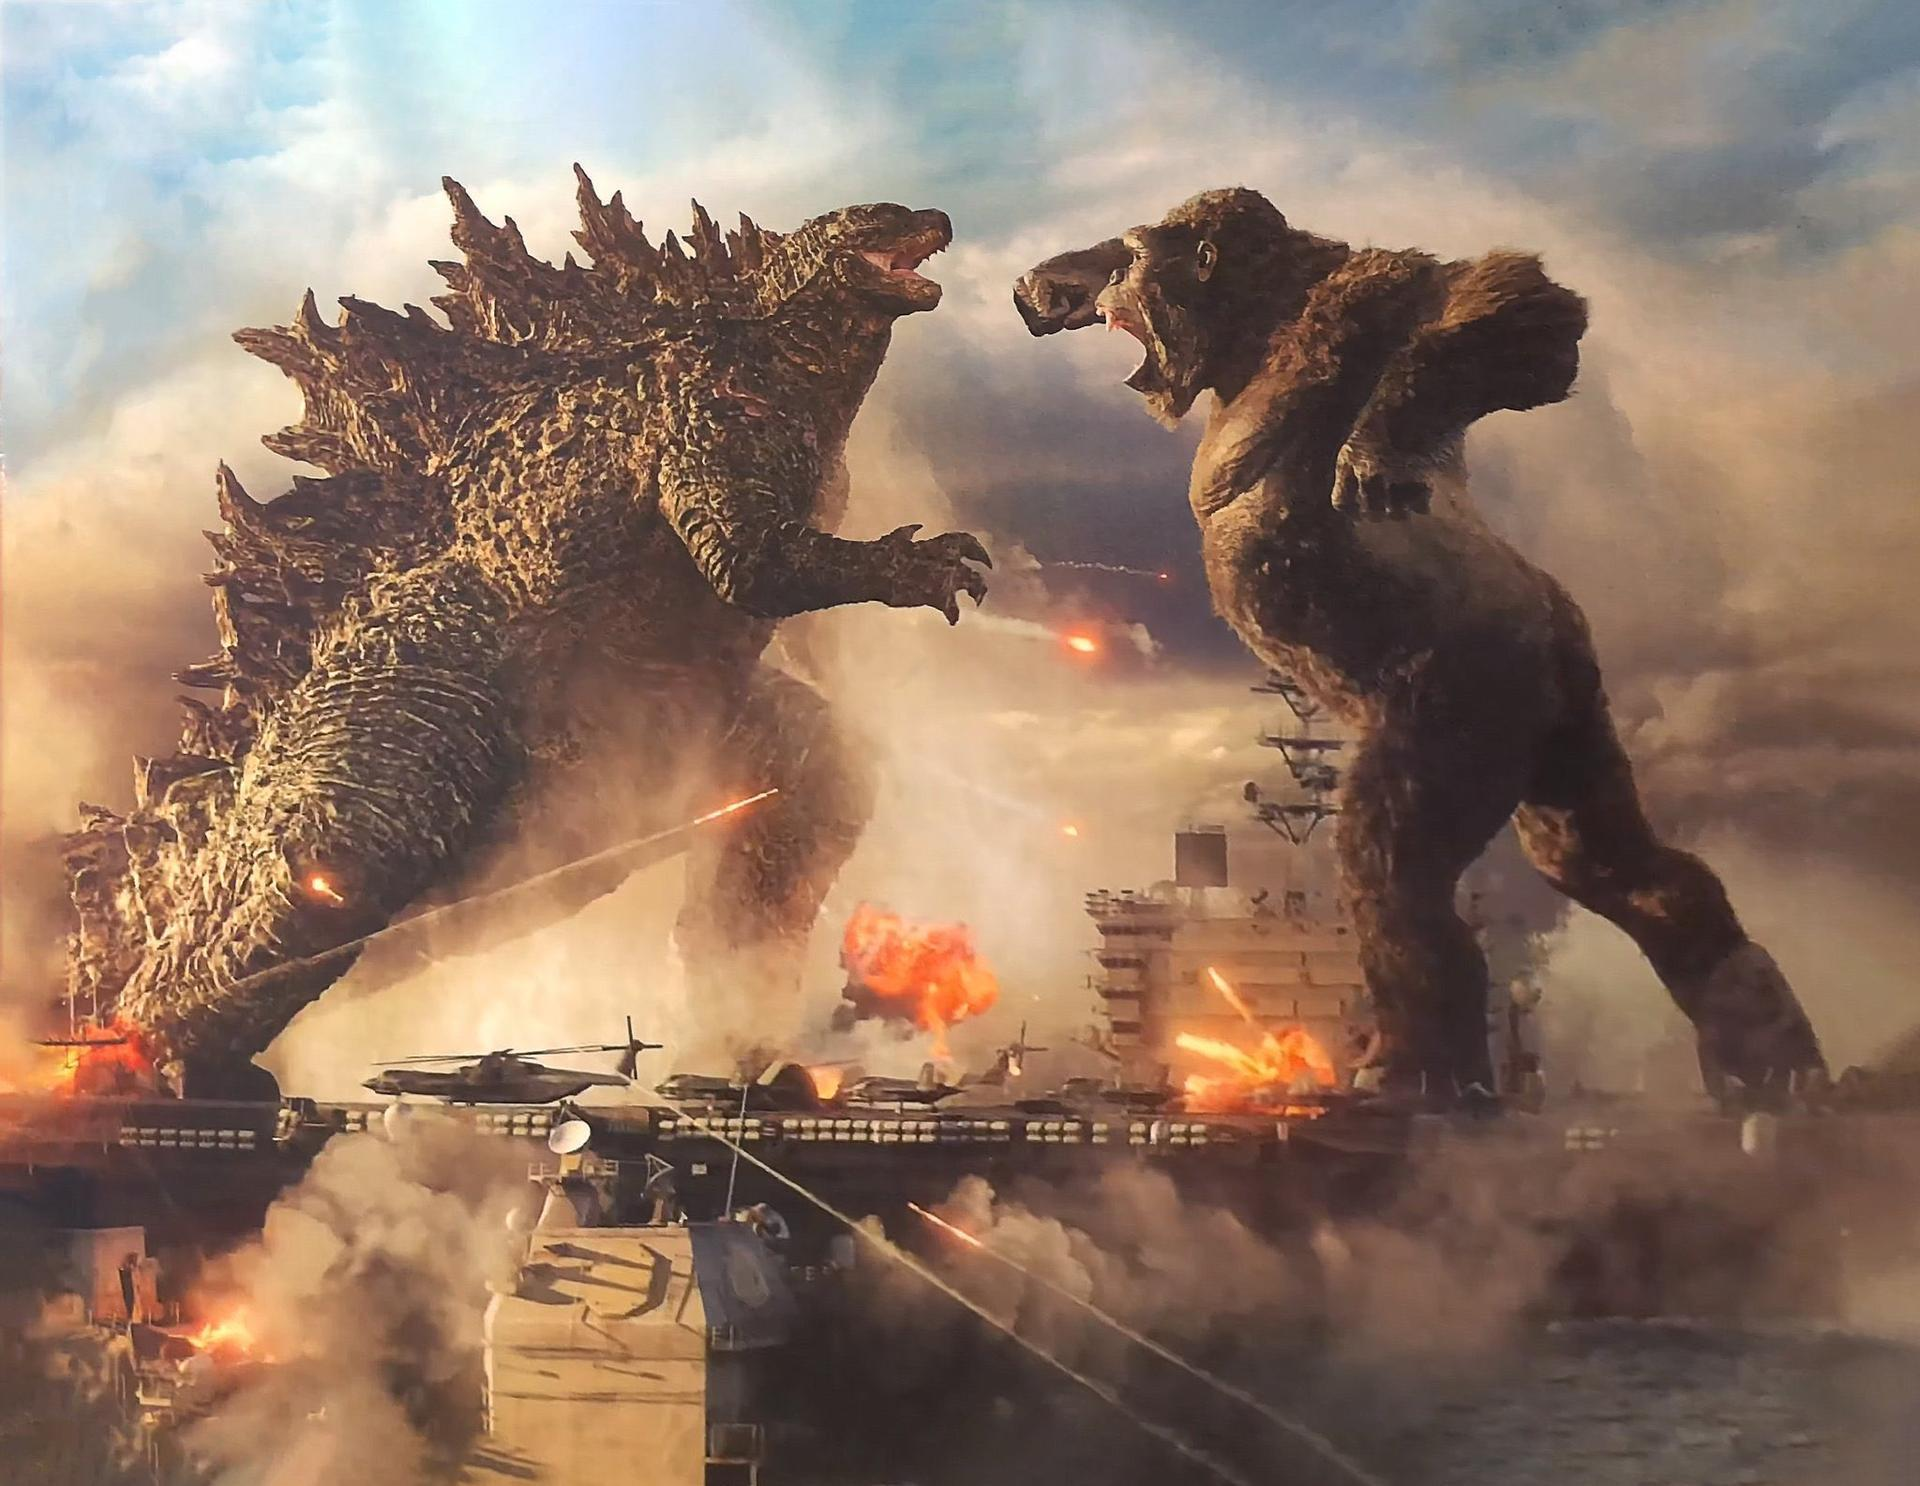 Godzilla Vs Kong On Hbo Max How To Watch Cnet